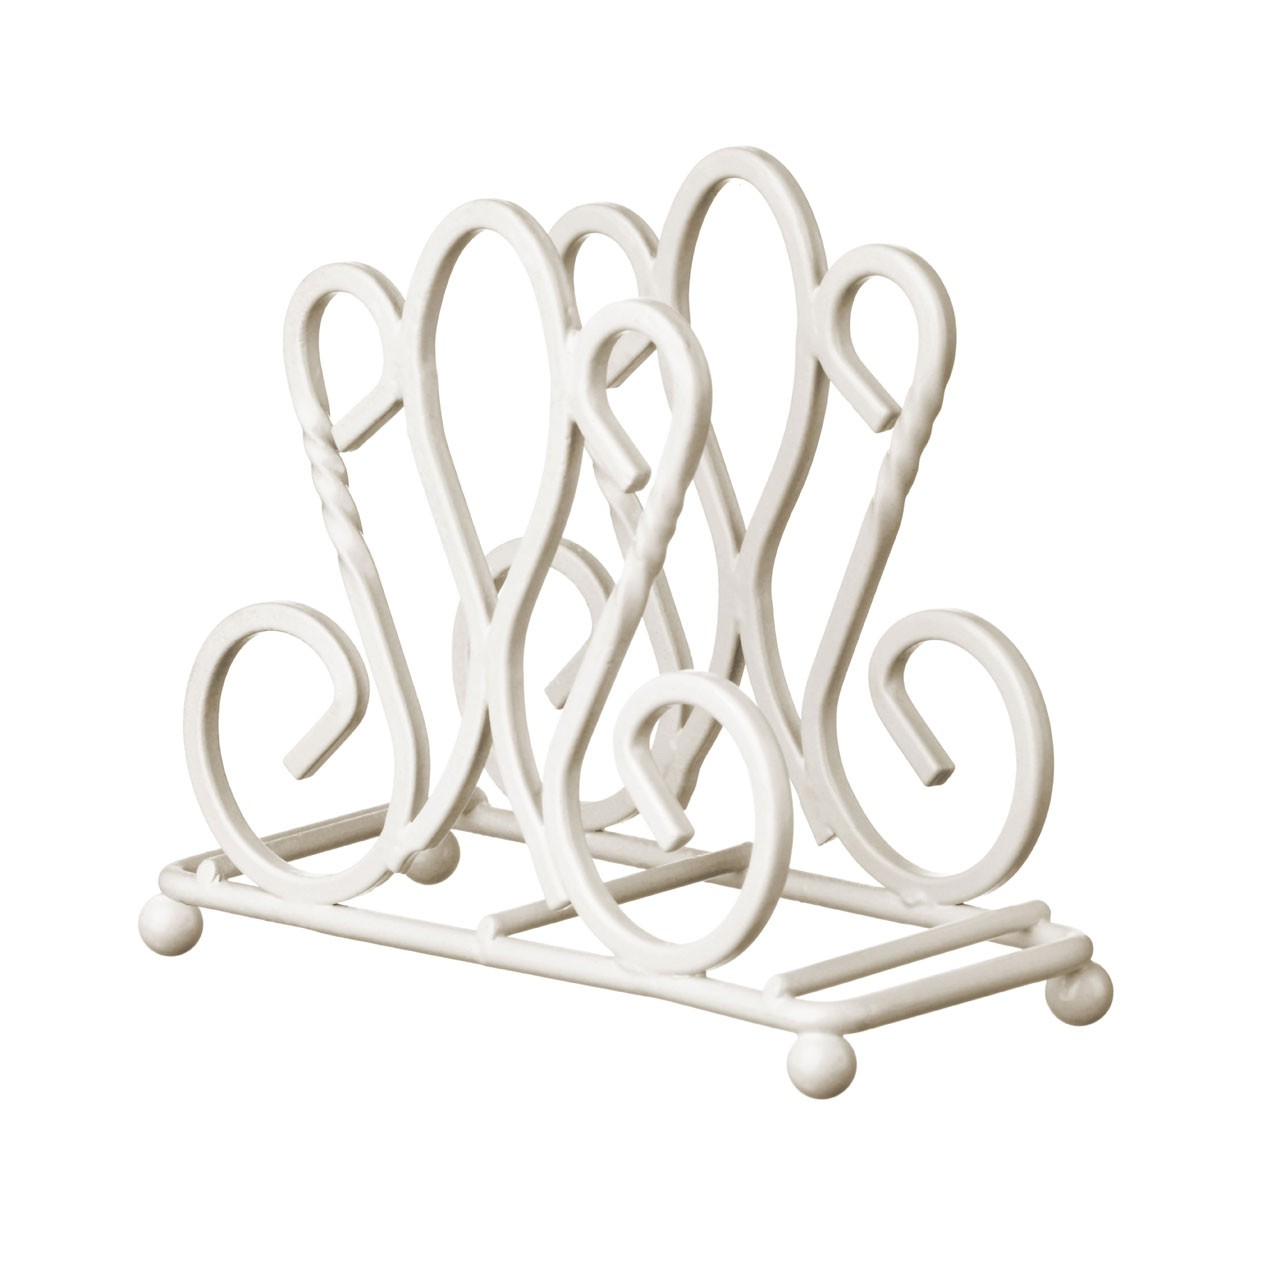 De Lis Napkin Holder - Cream